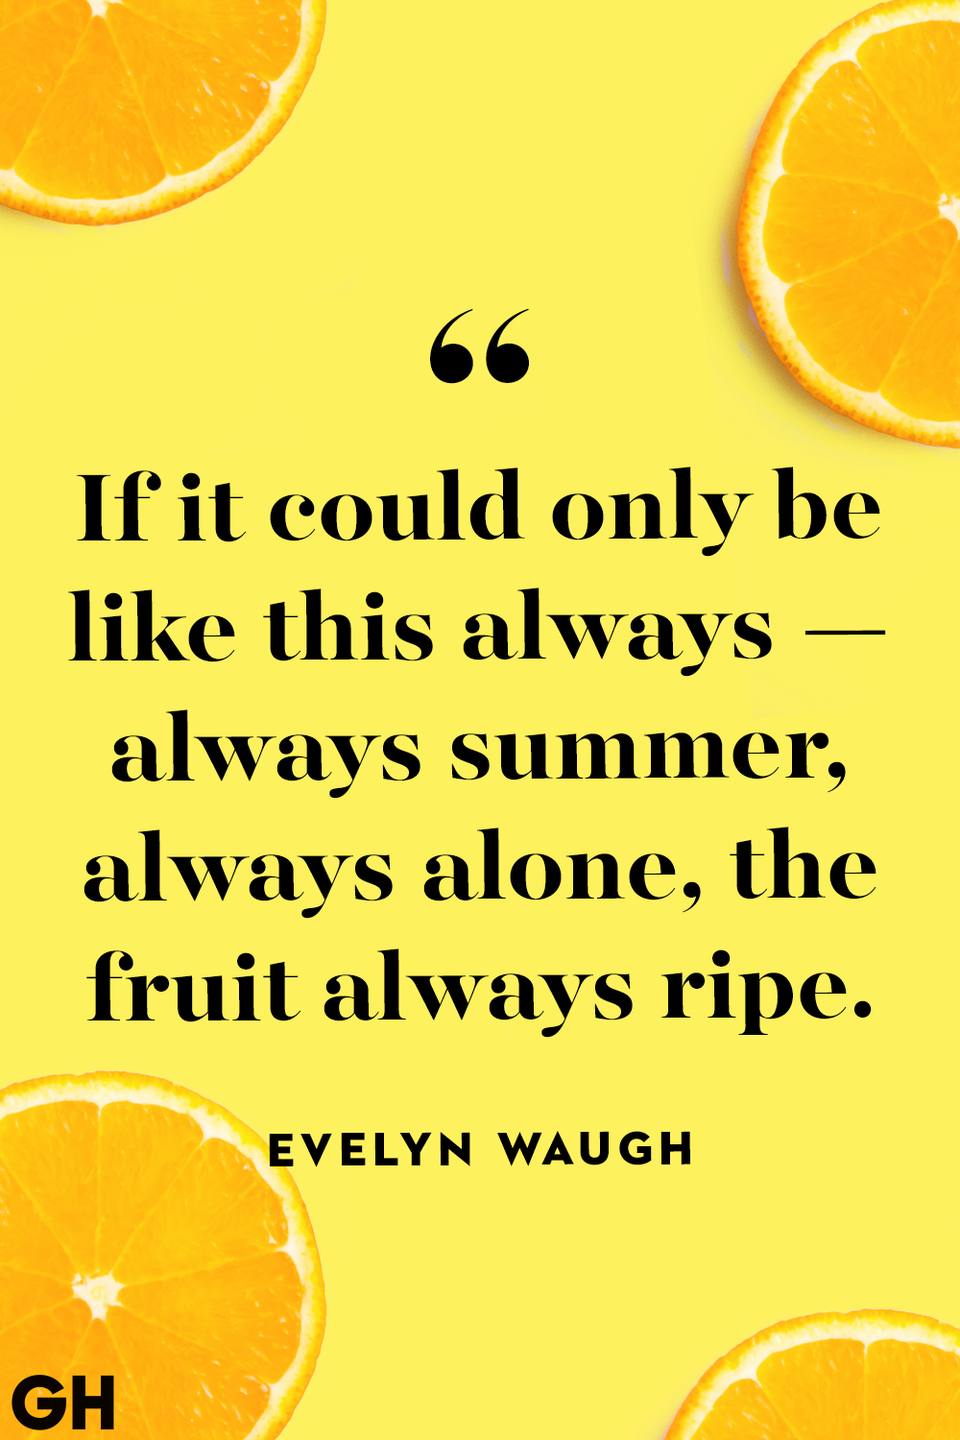 <p>If it could only be like this always — always summer, always alone, the fruit always ripe.</p>